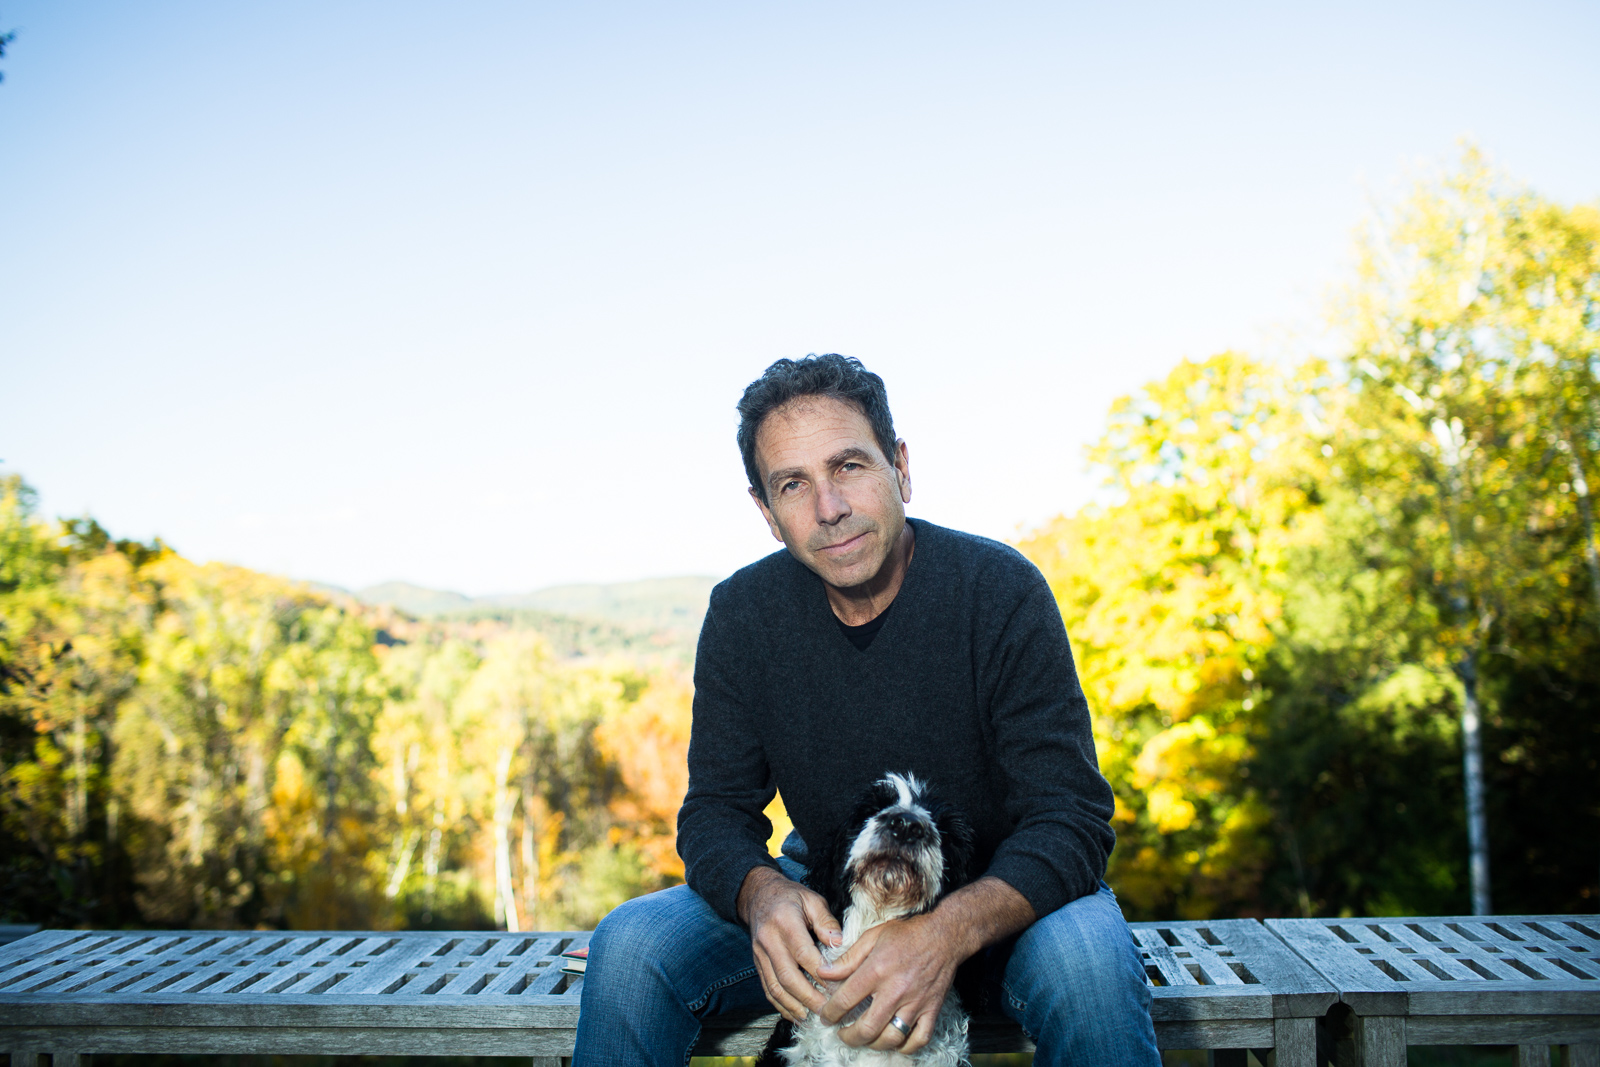 Jim Sadwith at his home in Woodstock, Vermont with his dog Queeg shortly before the release of his film Coming Through the Rye, on Wednesday, October 5, 2016.